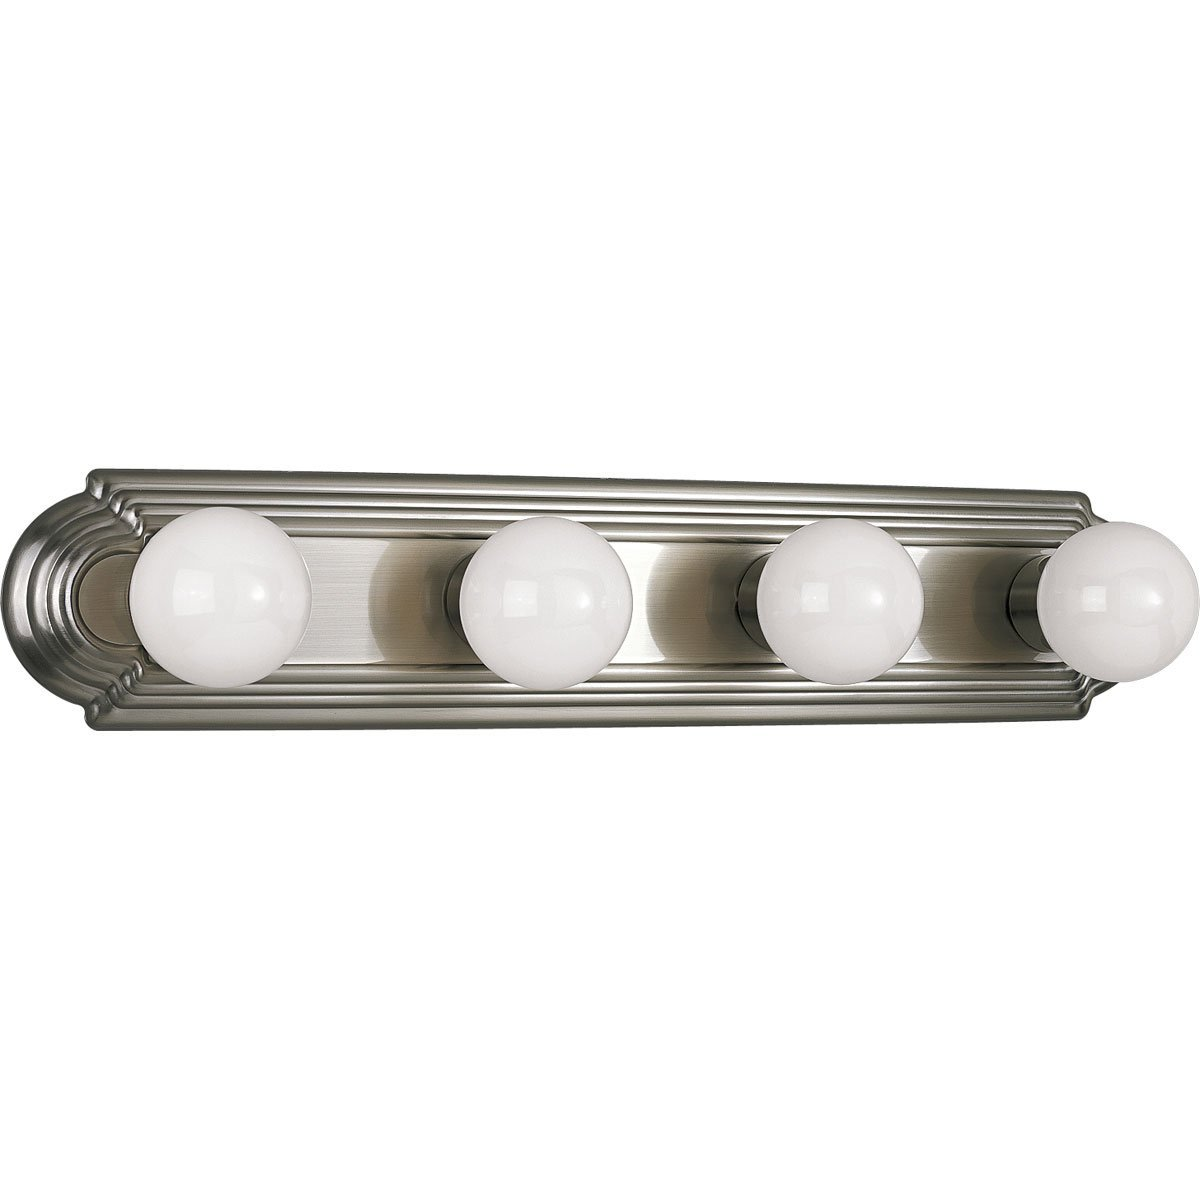 Progress Lighting P3025-09 4-Light Embossed Wall Mount Bracket Sockets Are On 6-Inch Centers and Wall Mount Only, Brushed Nickel